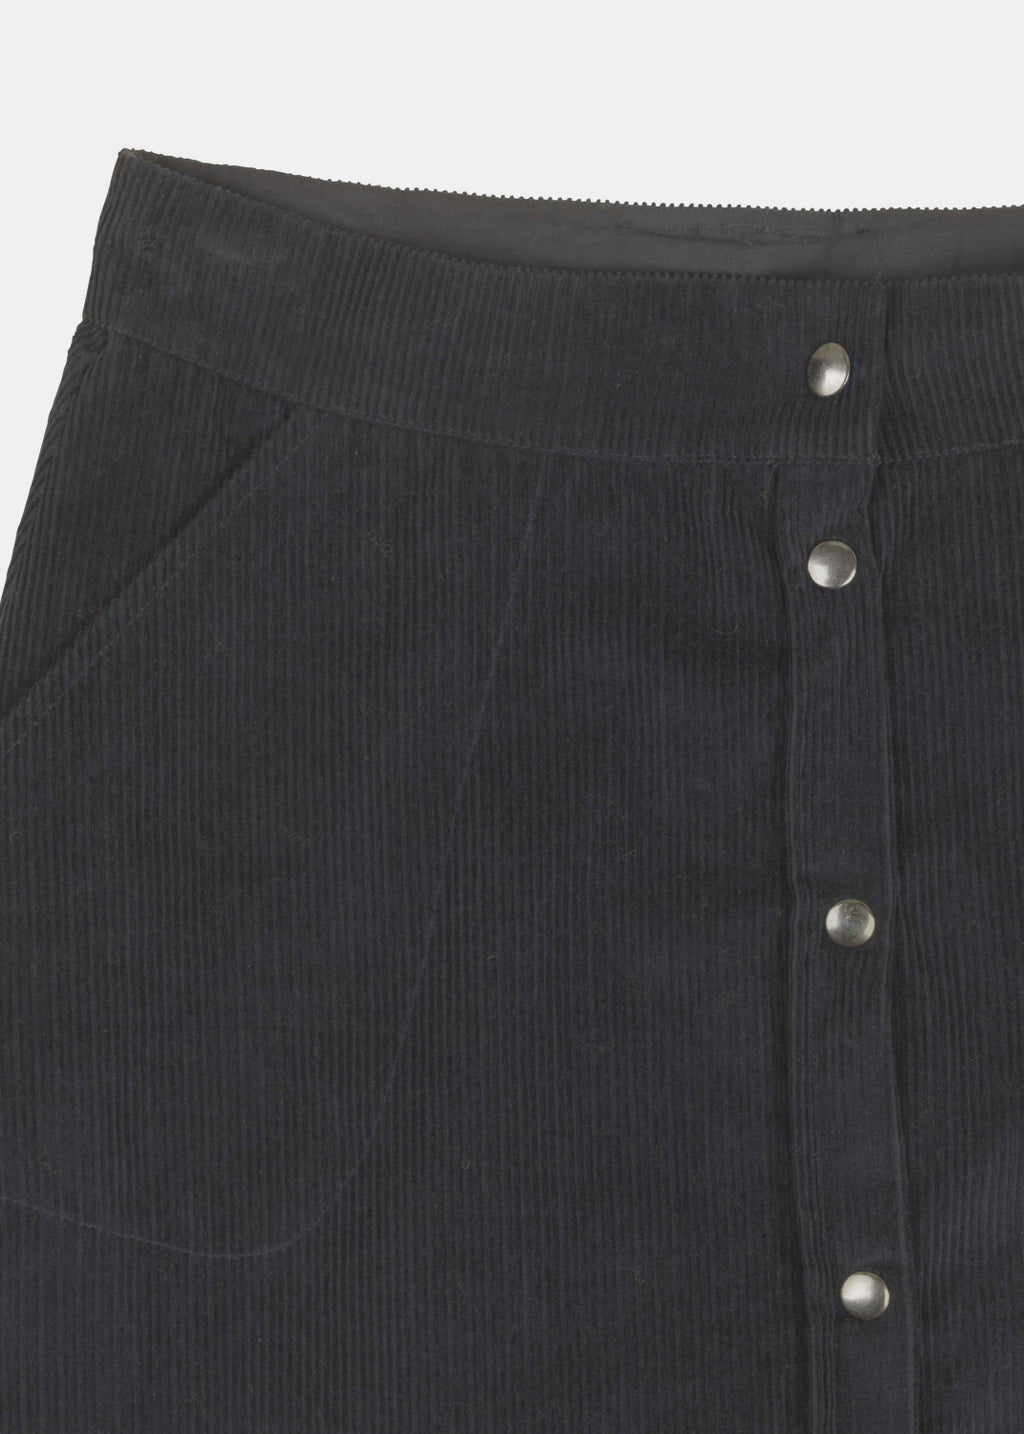 A-shape Skirt Corduroy